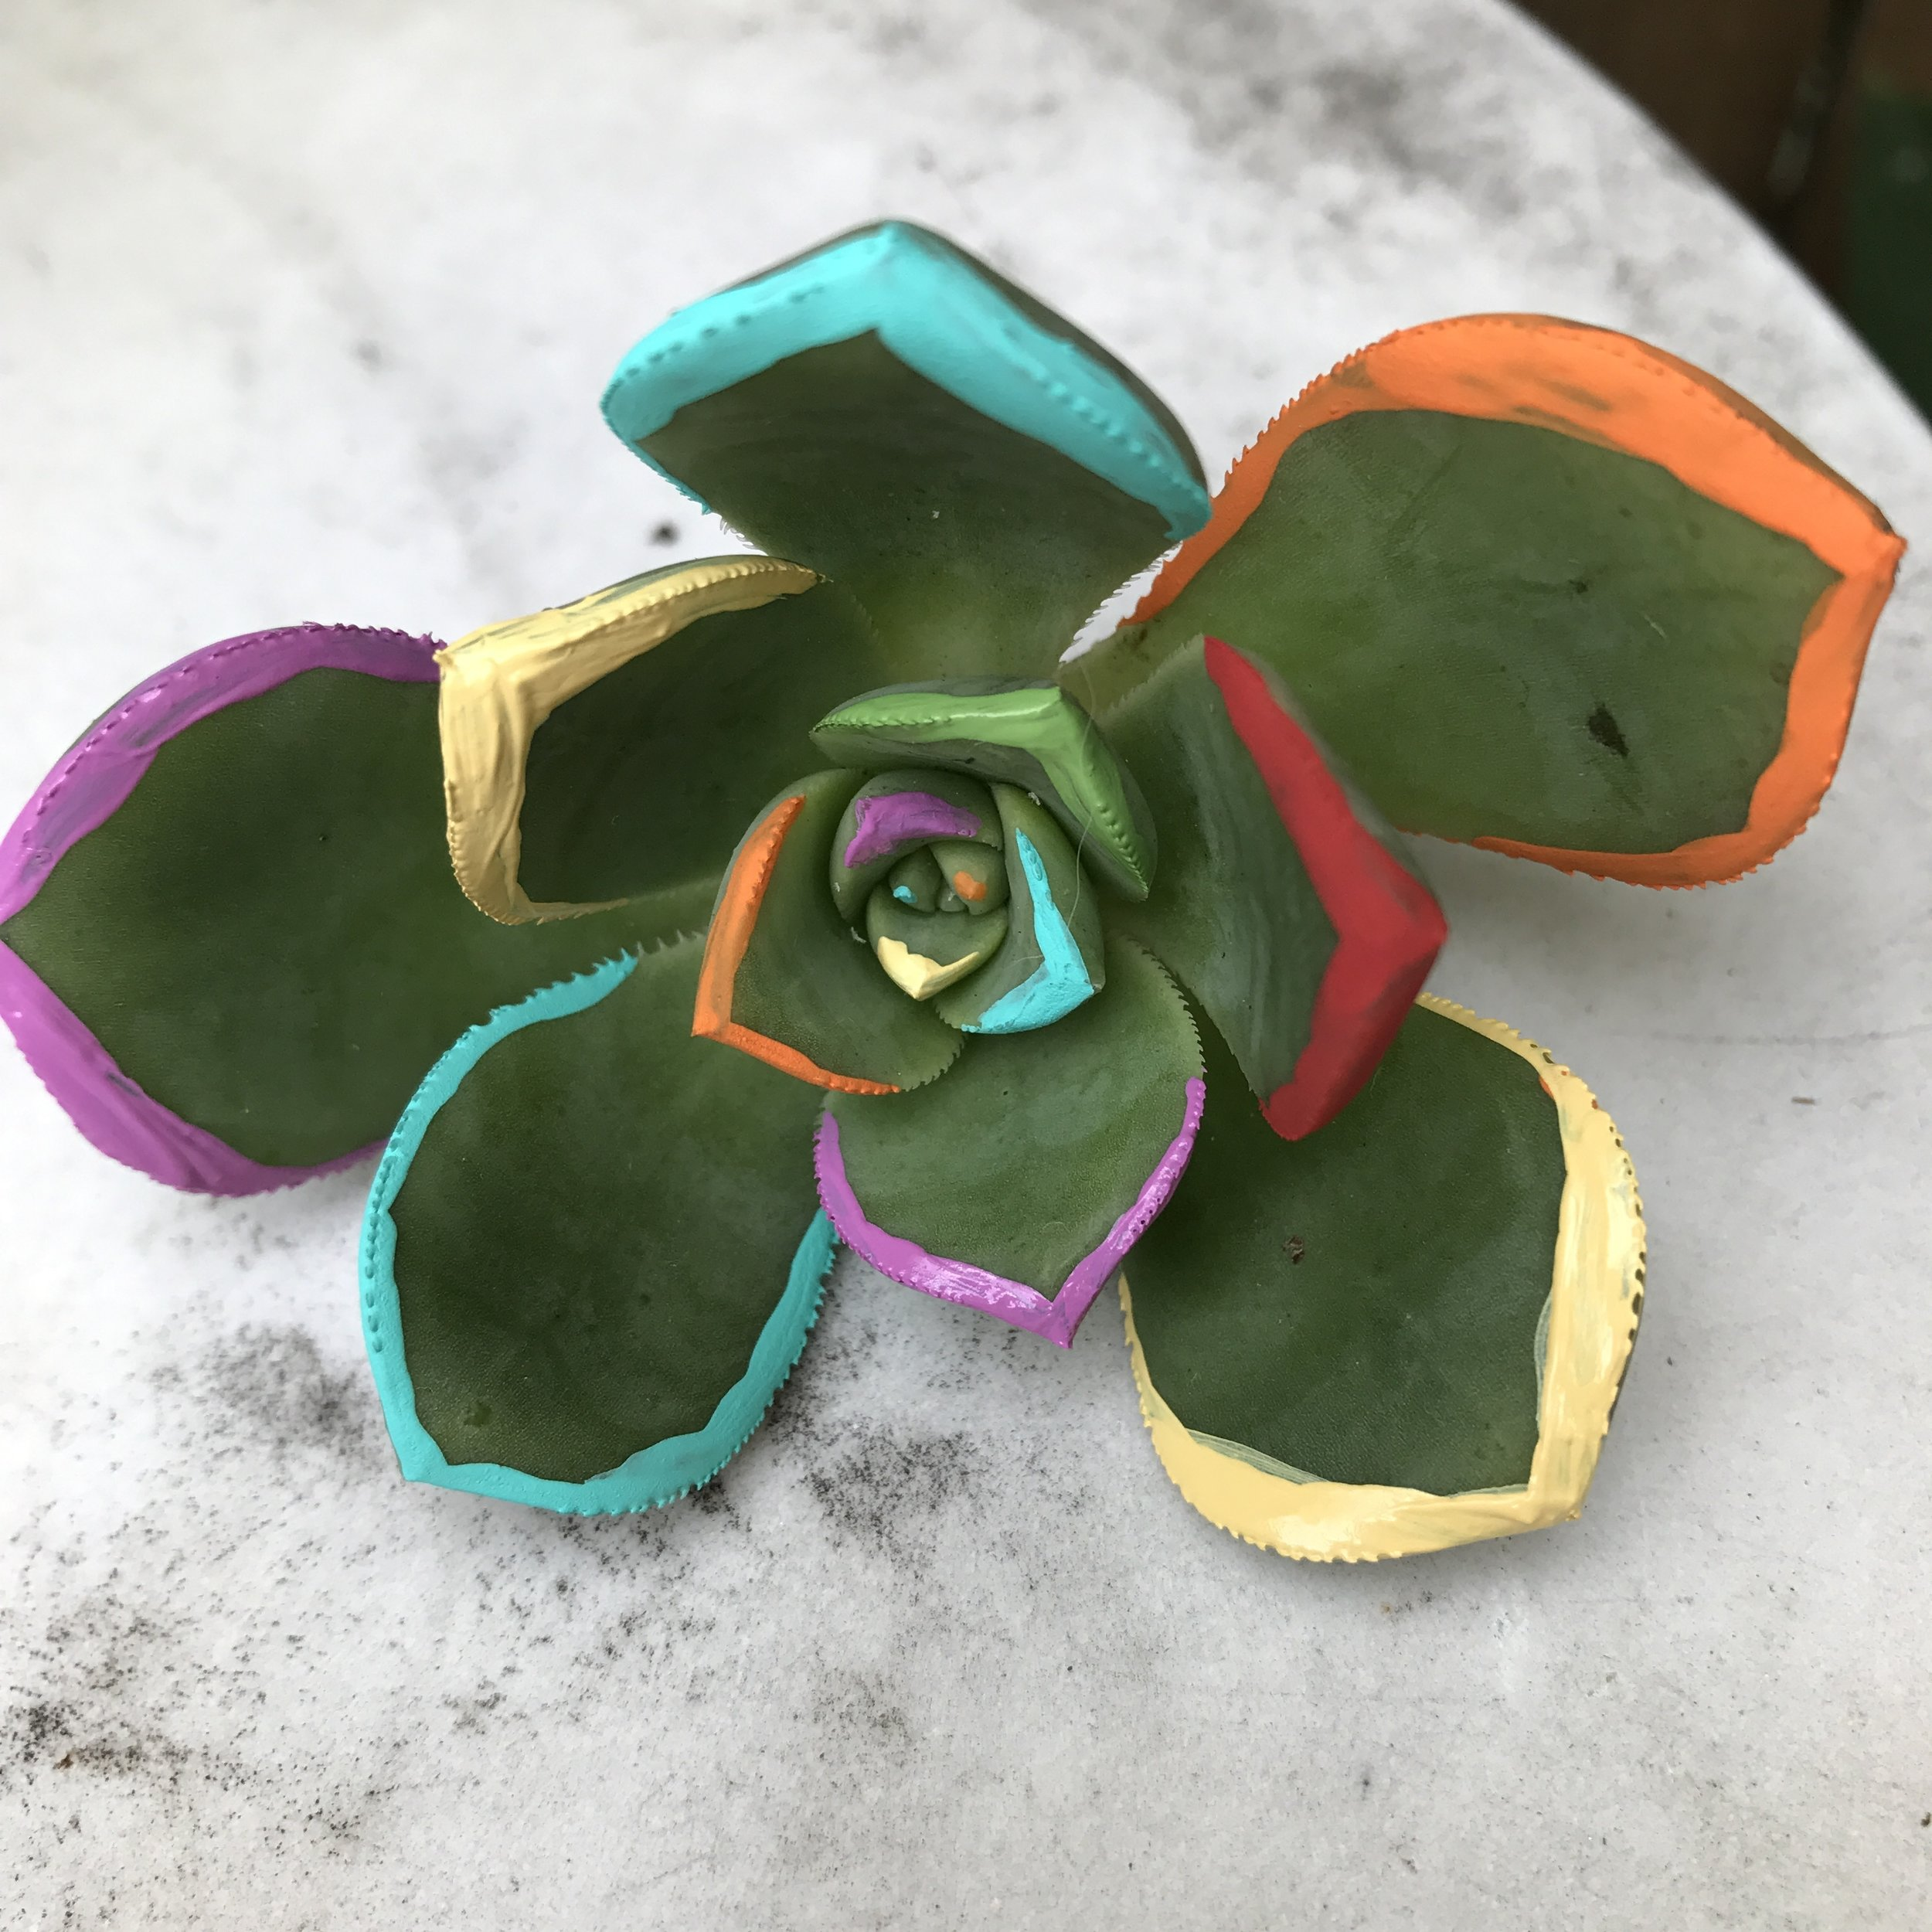 I love this acrylic painted succulent as a new twist on the green plants!